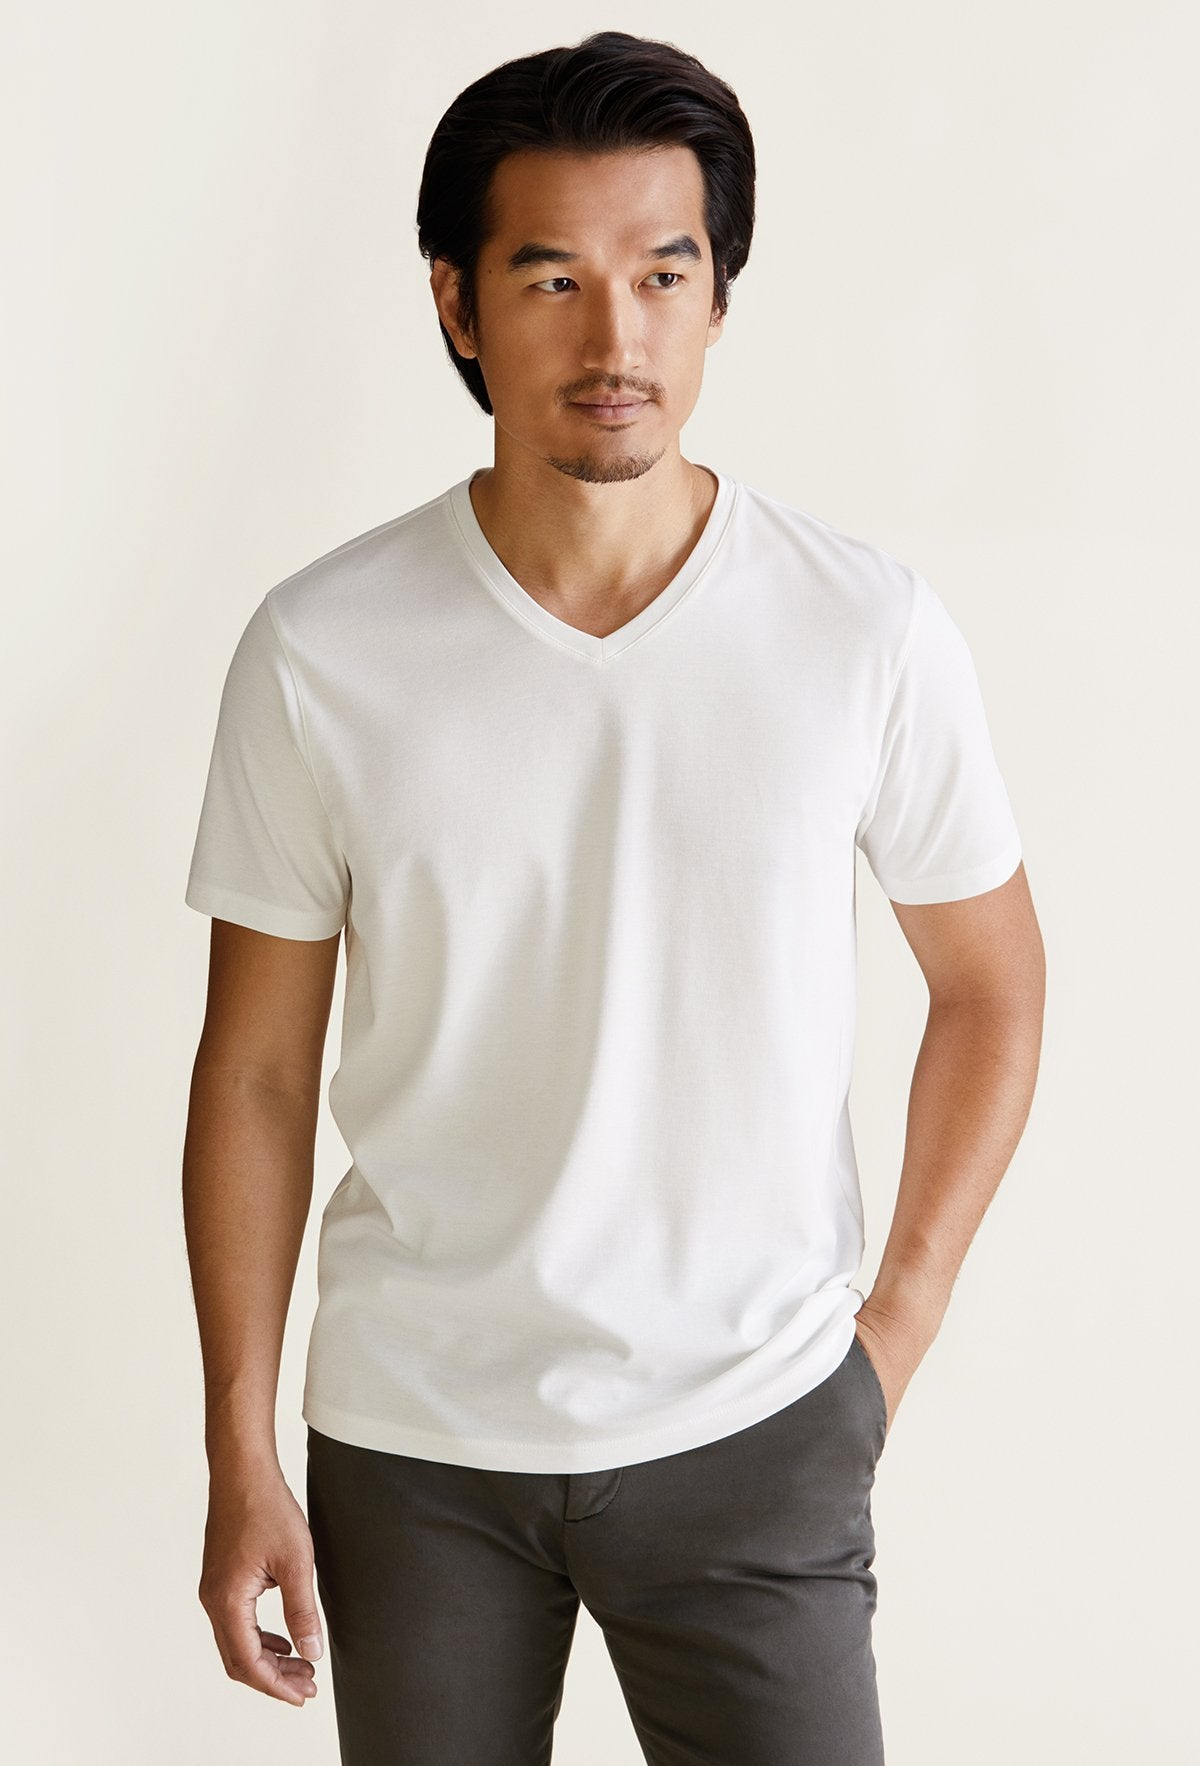 Men's White Pima Cotton V-Neck T-Shirt - Peruvian Cotton Blend